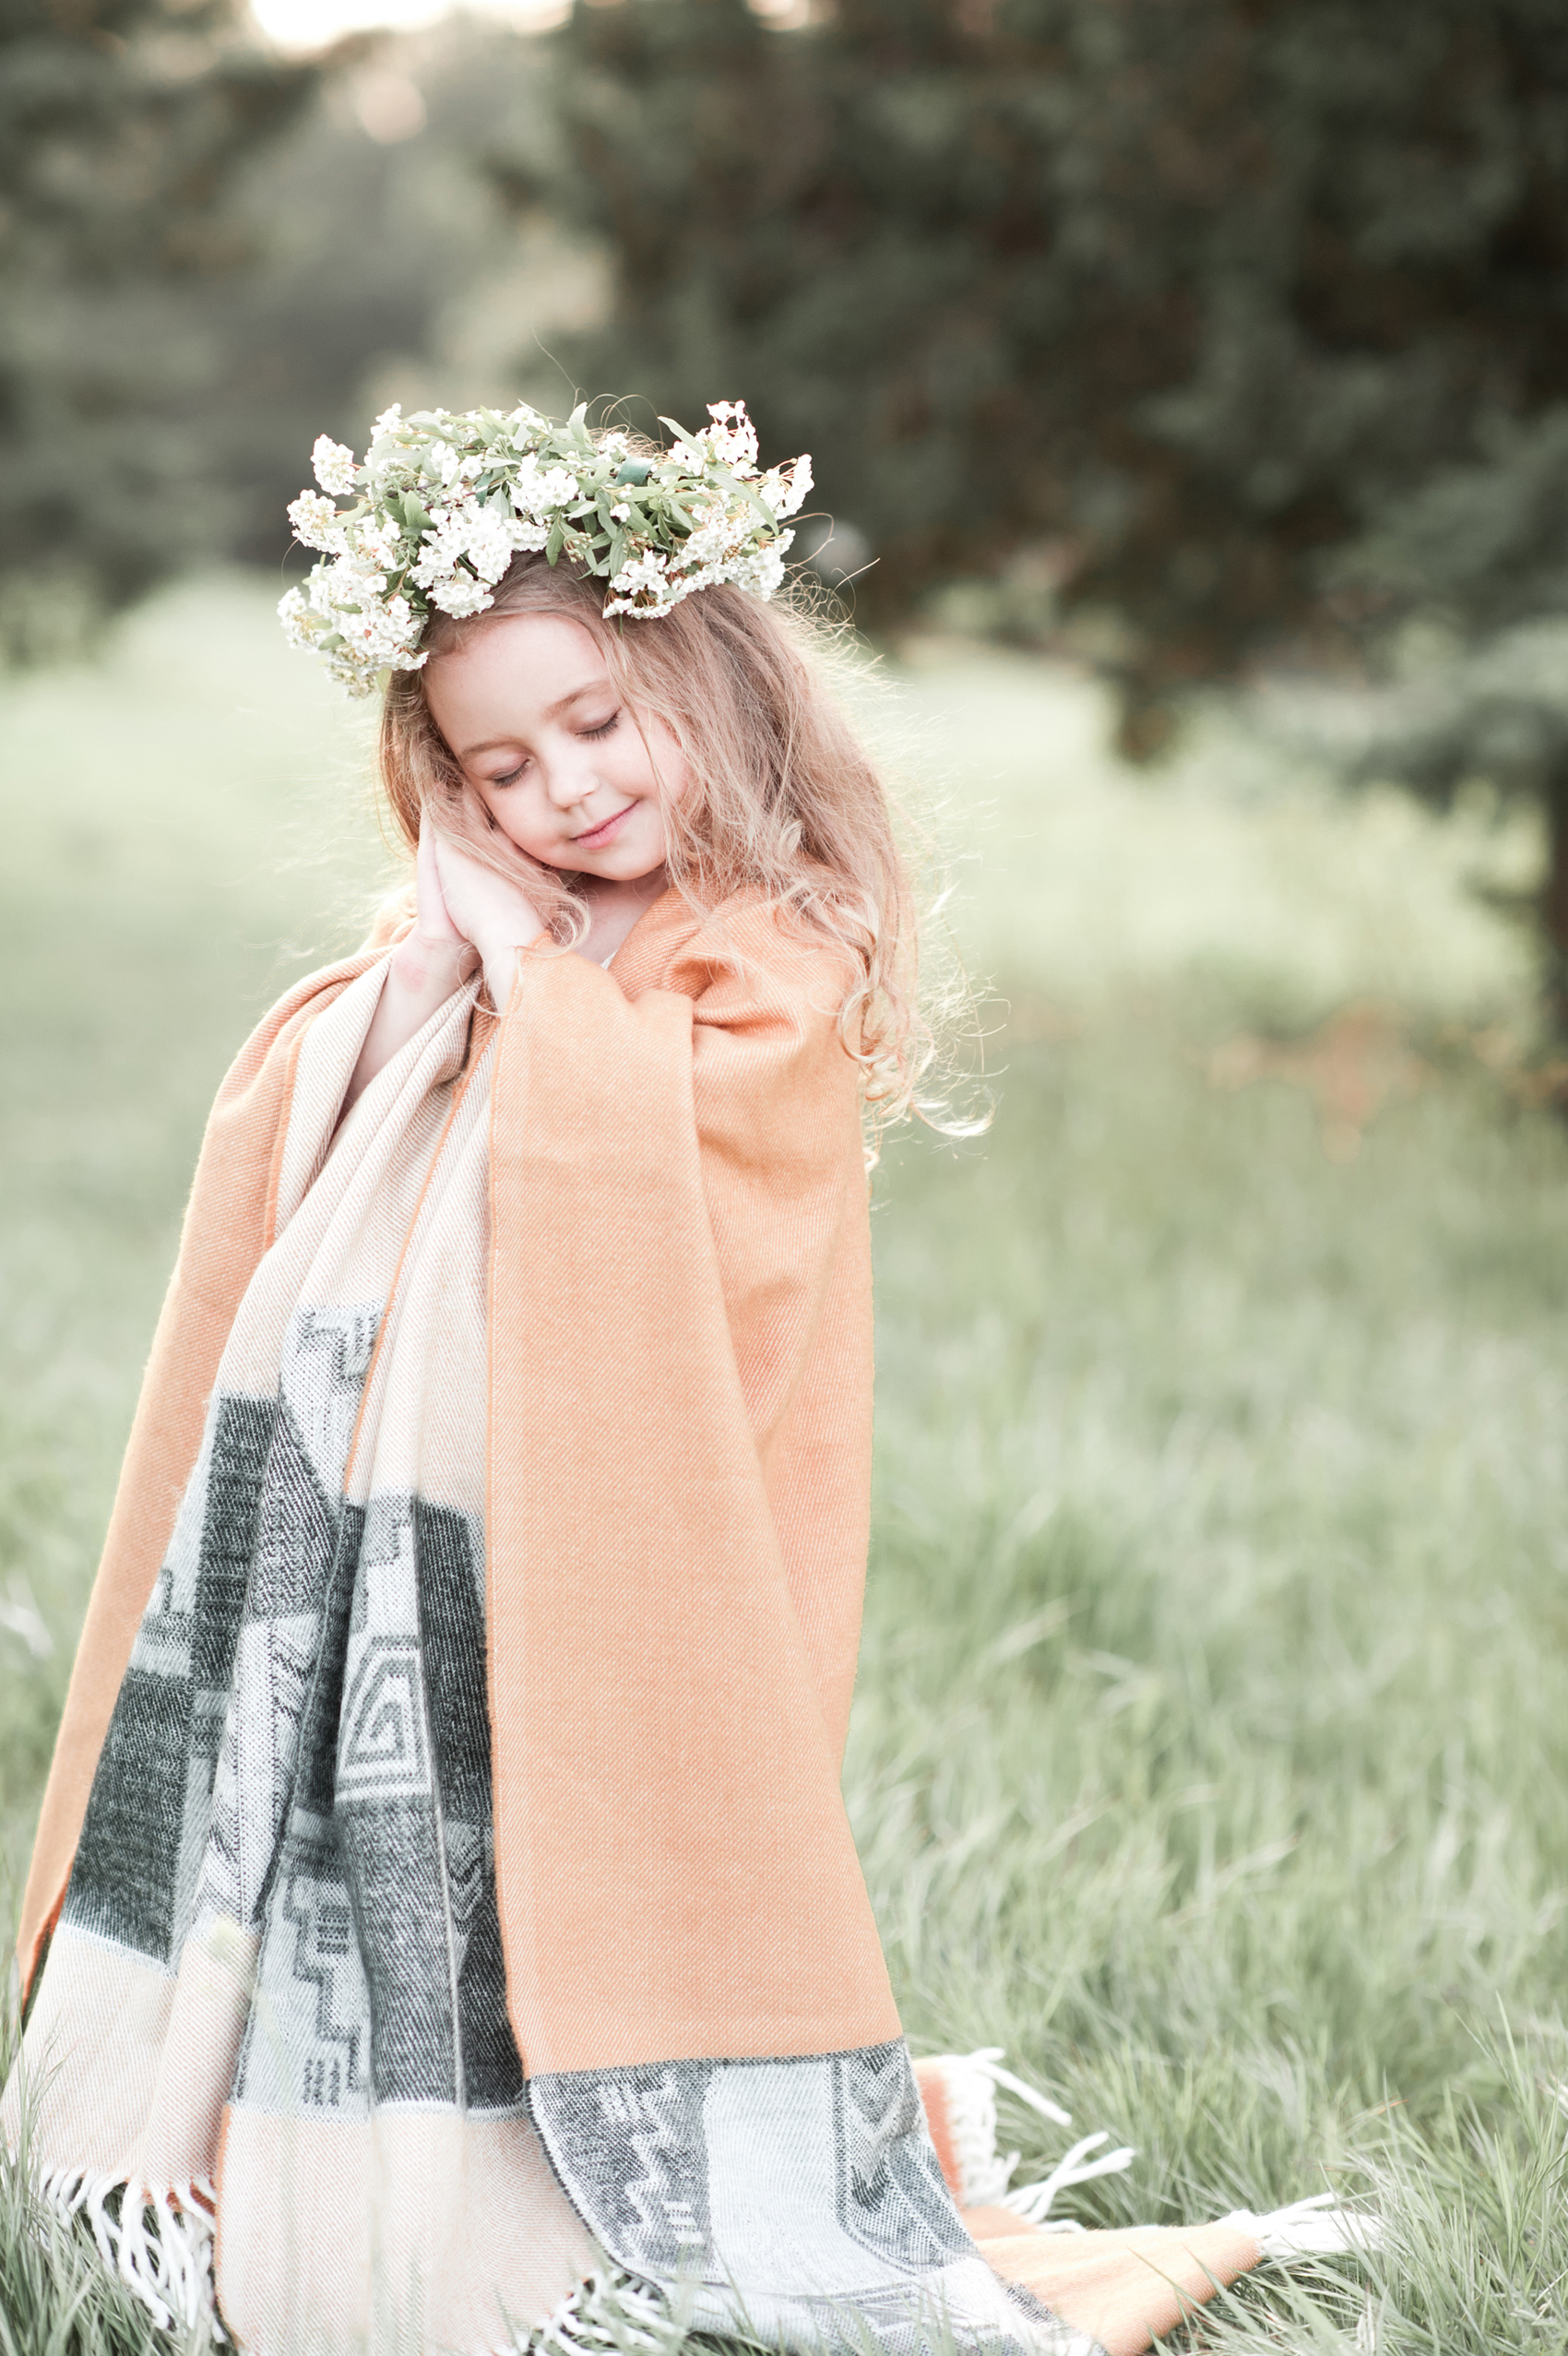 Wearing a Garland girl in the grass 53358